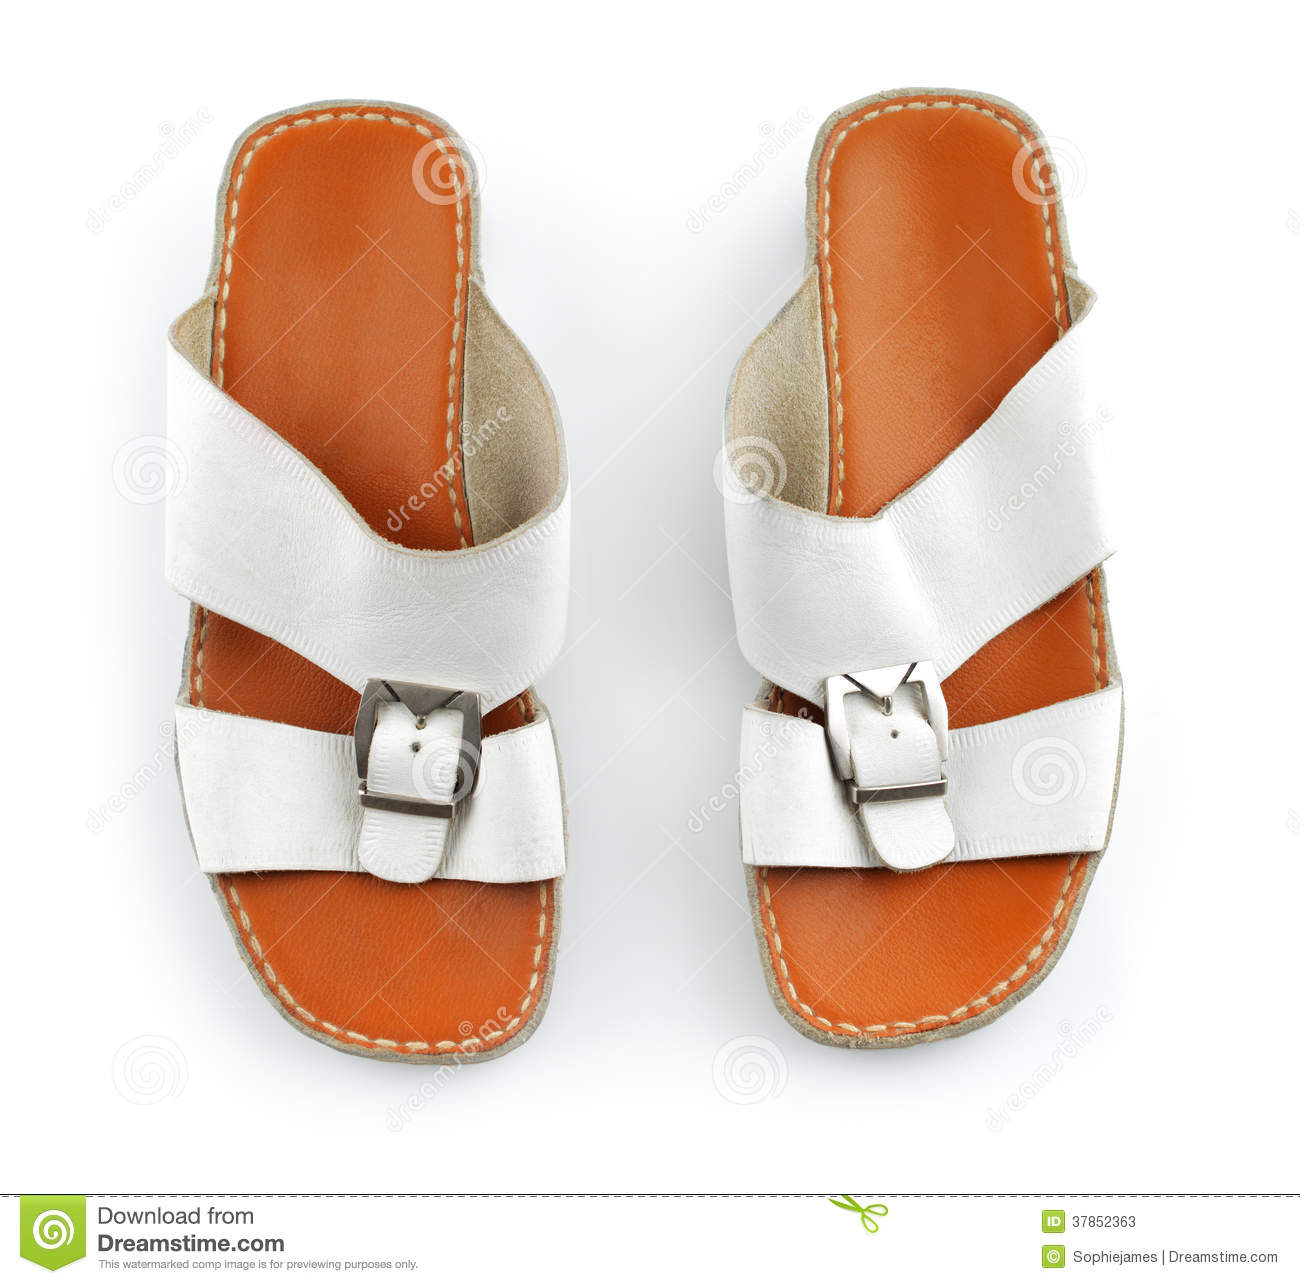 a3c711fa9b6 Traditional Arabic sandals stock image. Image of arabic - 37852363